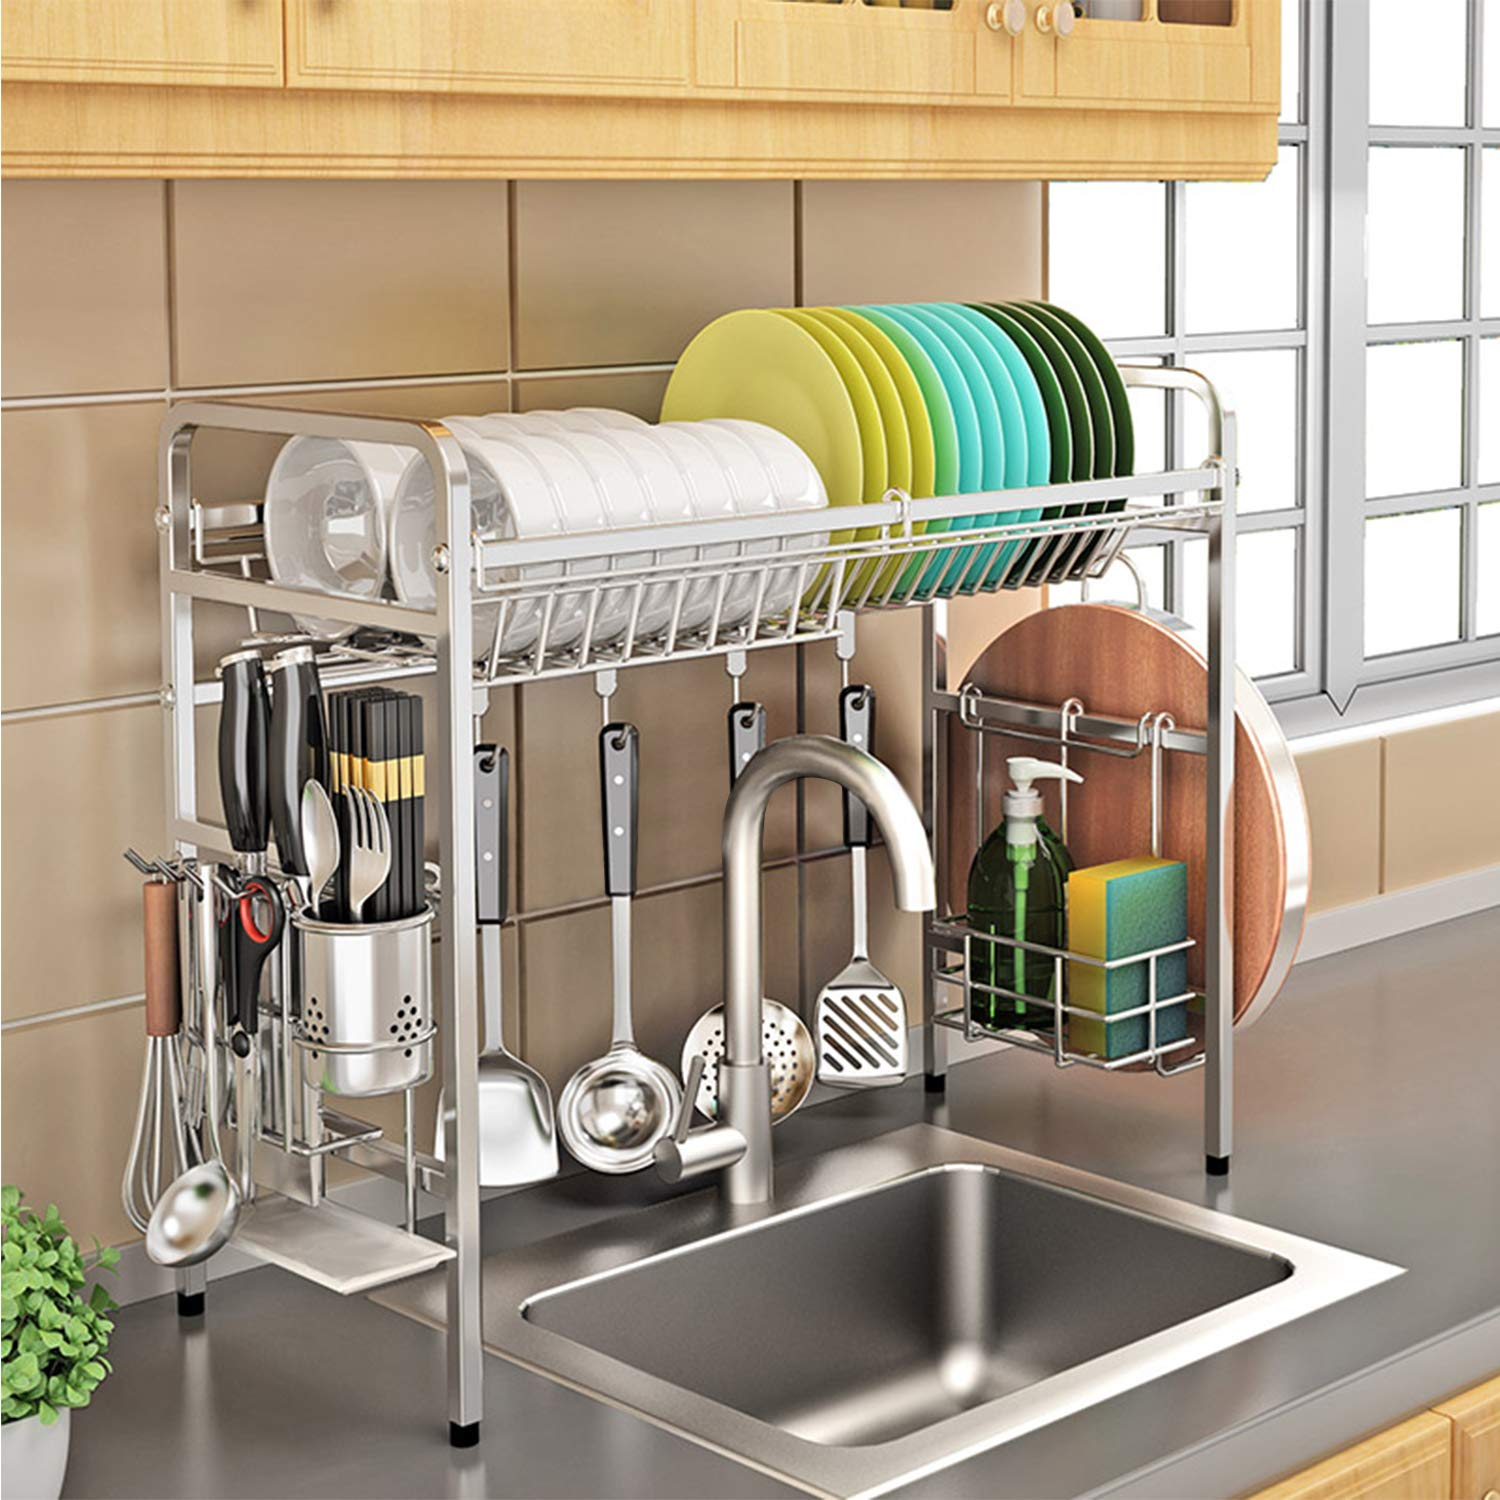 Buy Kurtzy 304 Stainless Steel Over The Sink Rack For Kitchen Dish Drainer Storage And Utensils Holder Dish Drying Rack Space Save Organizer Online At Low Prices In India Amazon In